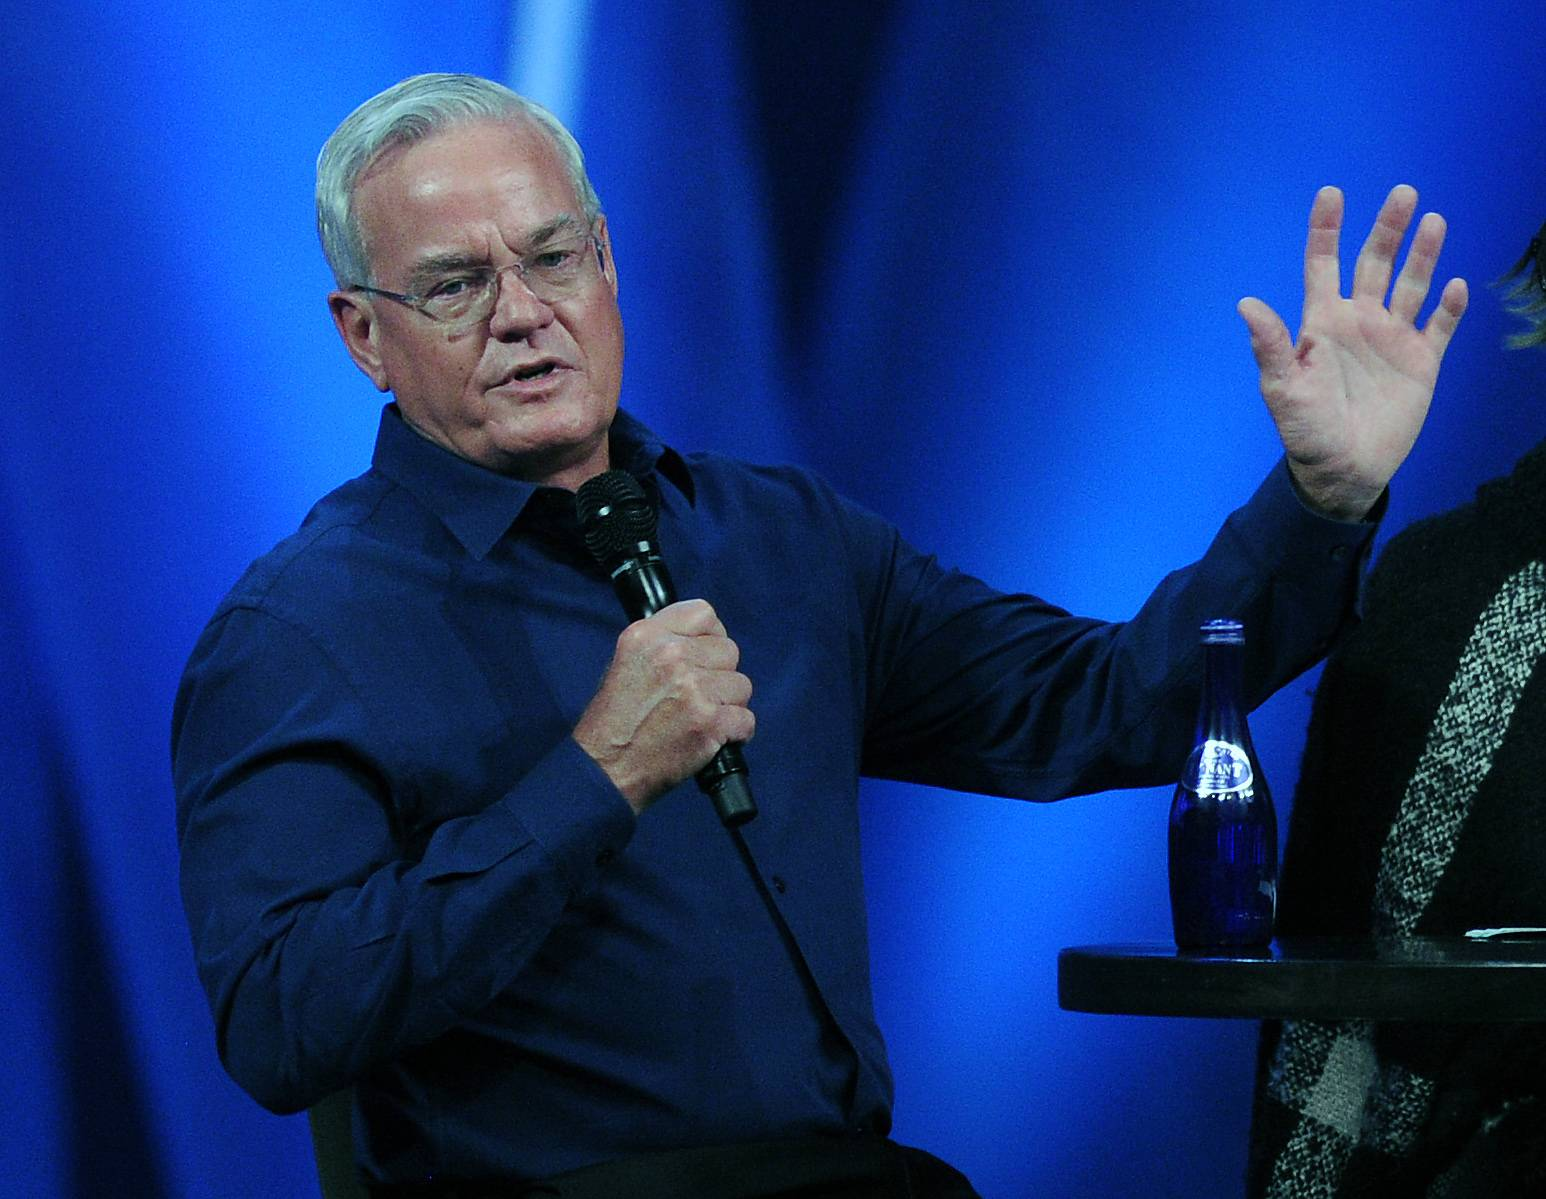 Willow Creek lead pastor announces independent investigation of Hybels